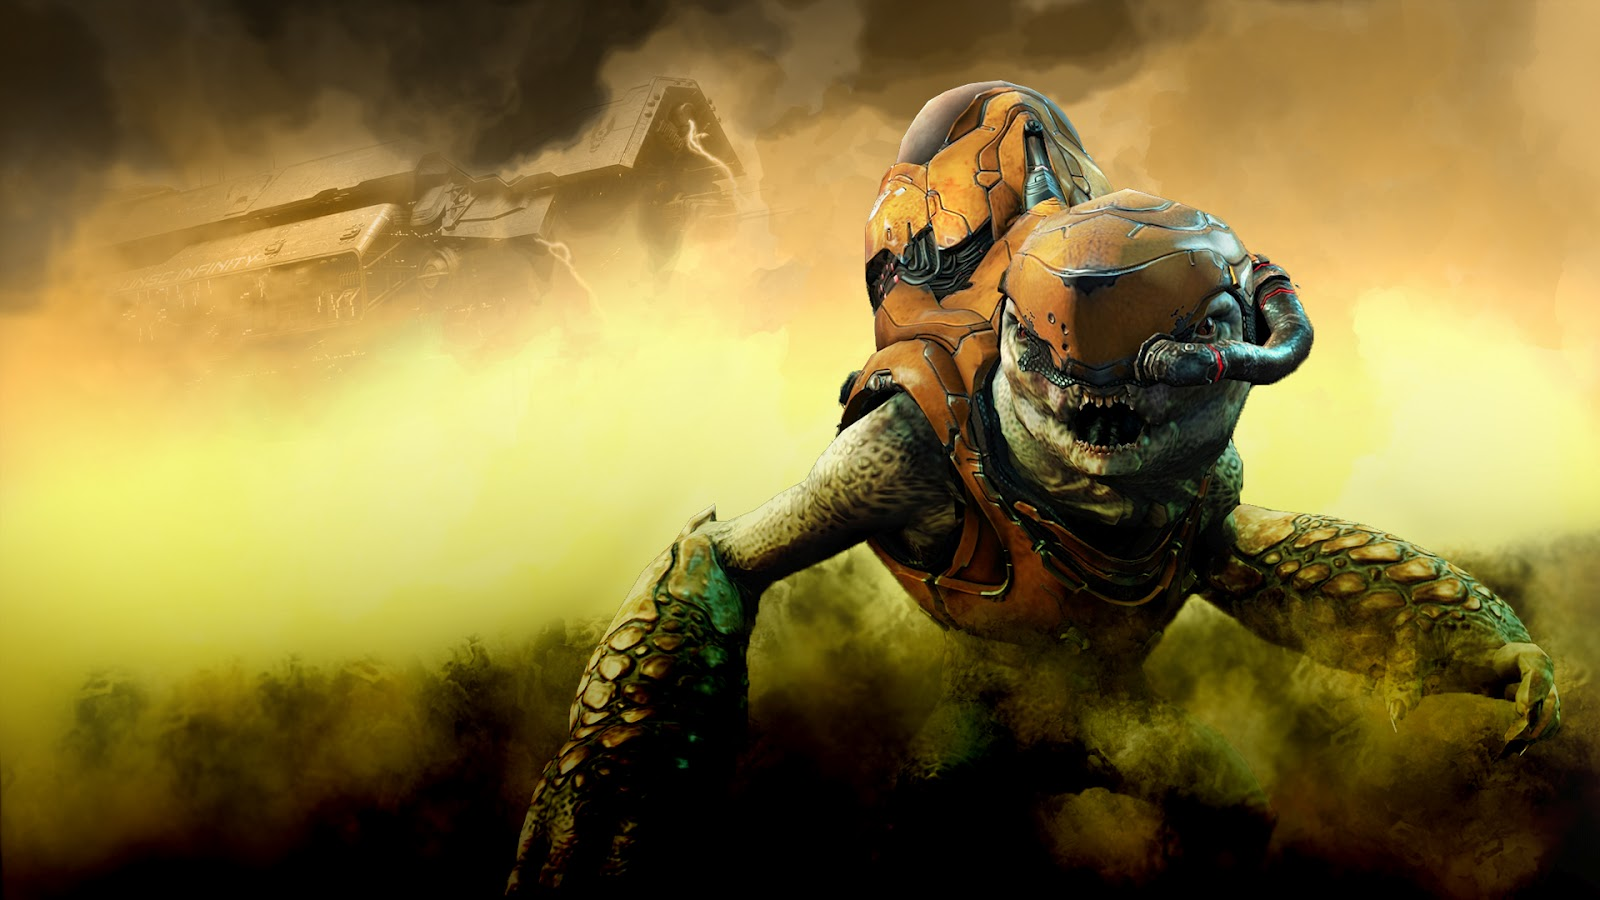 Halo 4 Anyone A Collection of Halo 4 Wall Papers C Town Gaming 1600x900